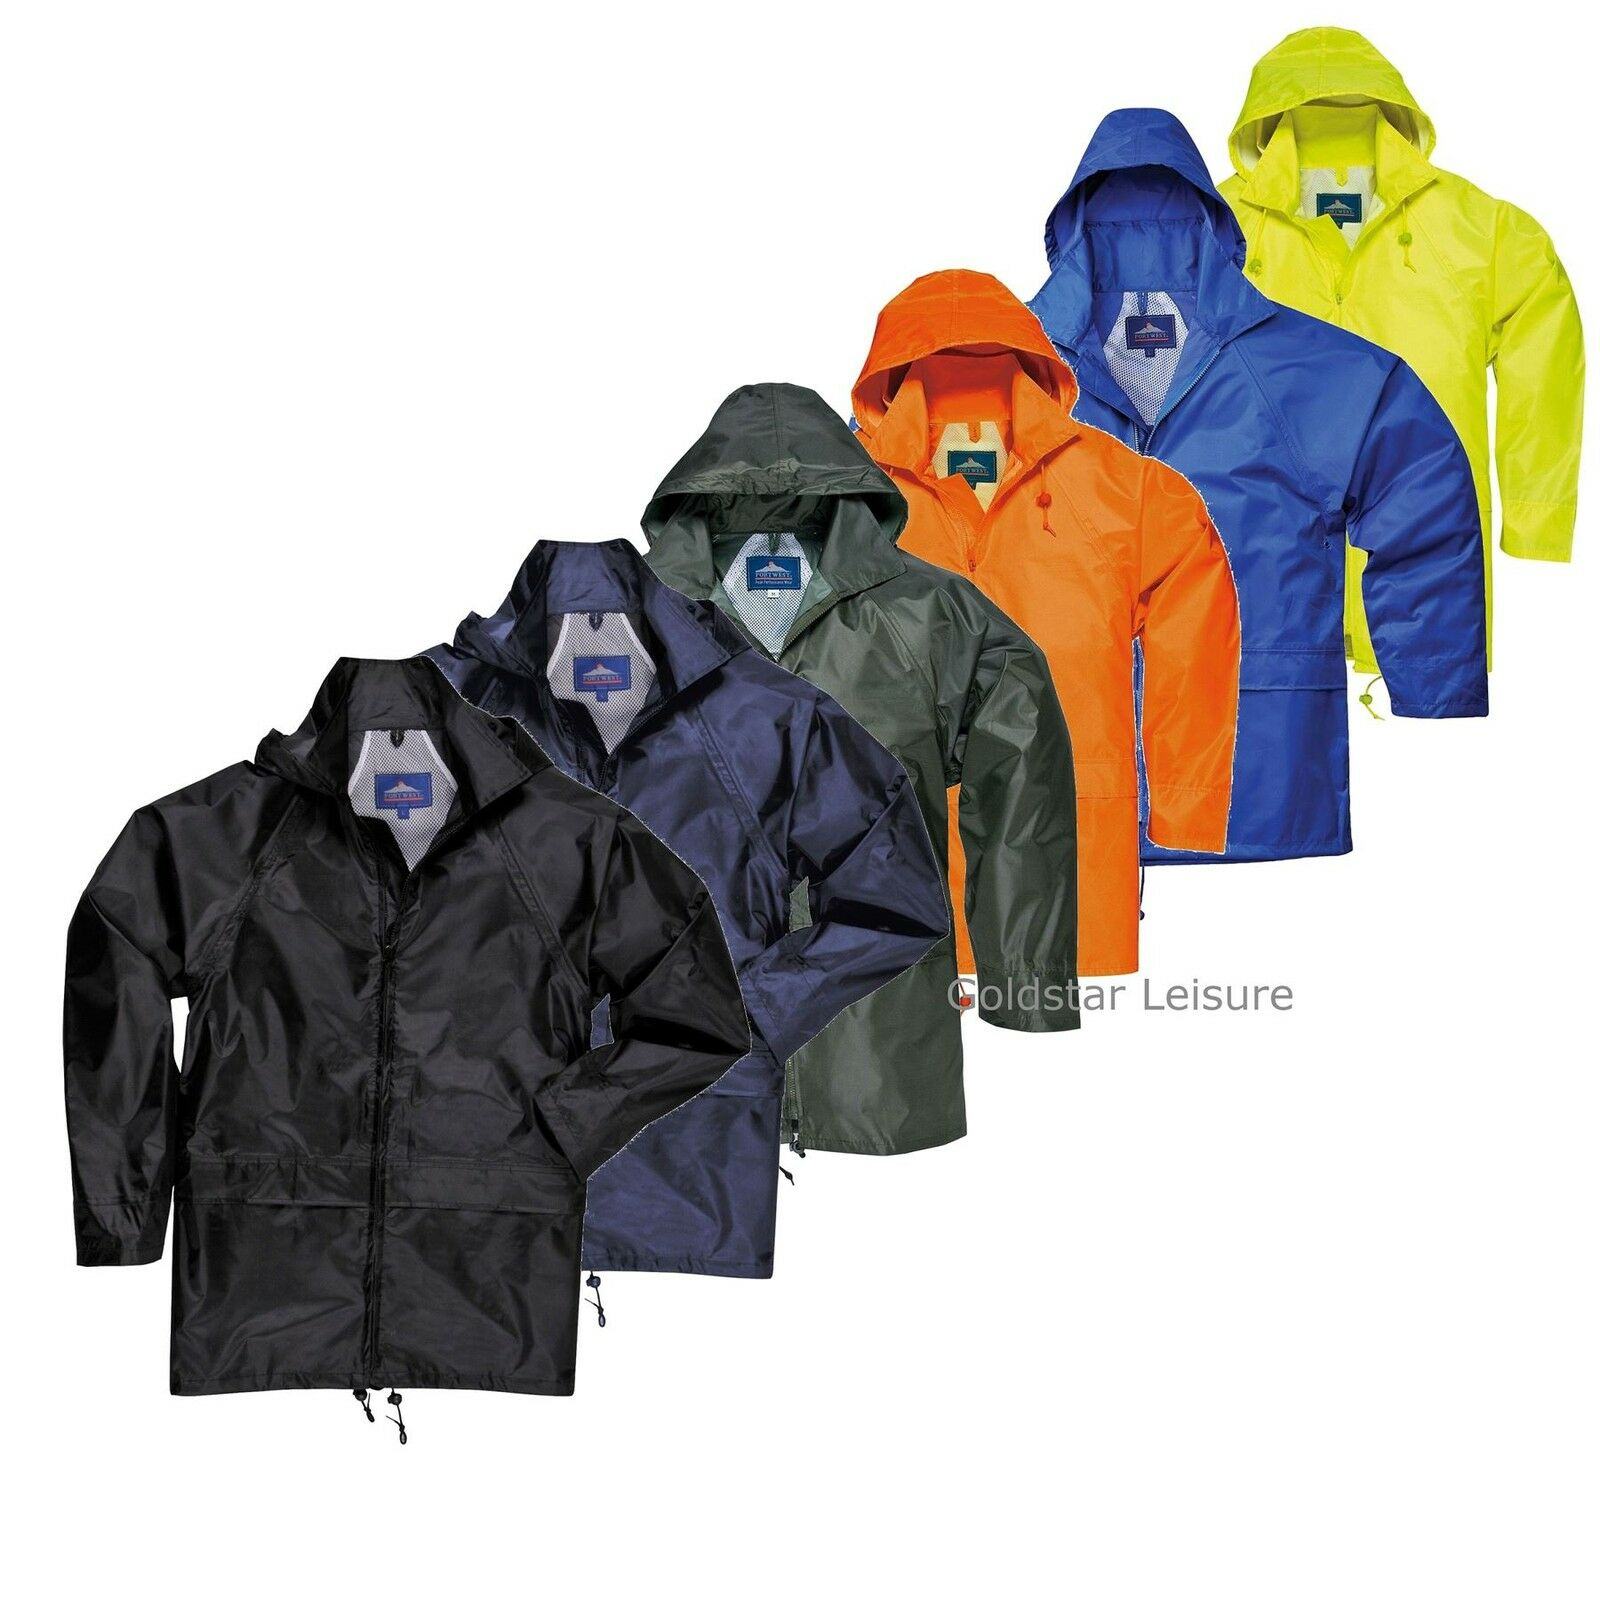 Manteau pluie imperméable rouler capuche dos taped joug taped dos coutures workwear S440 9547d3